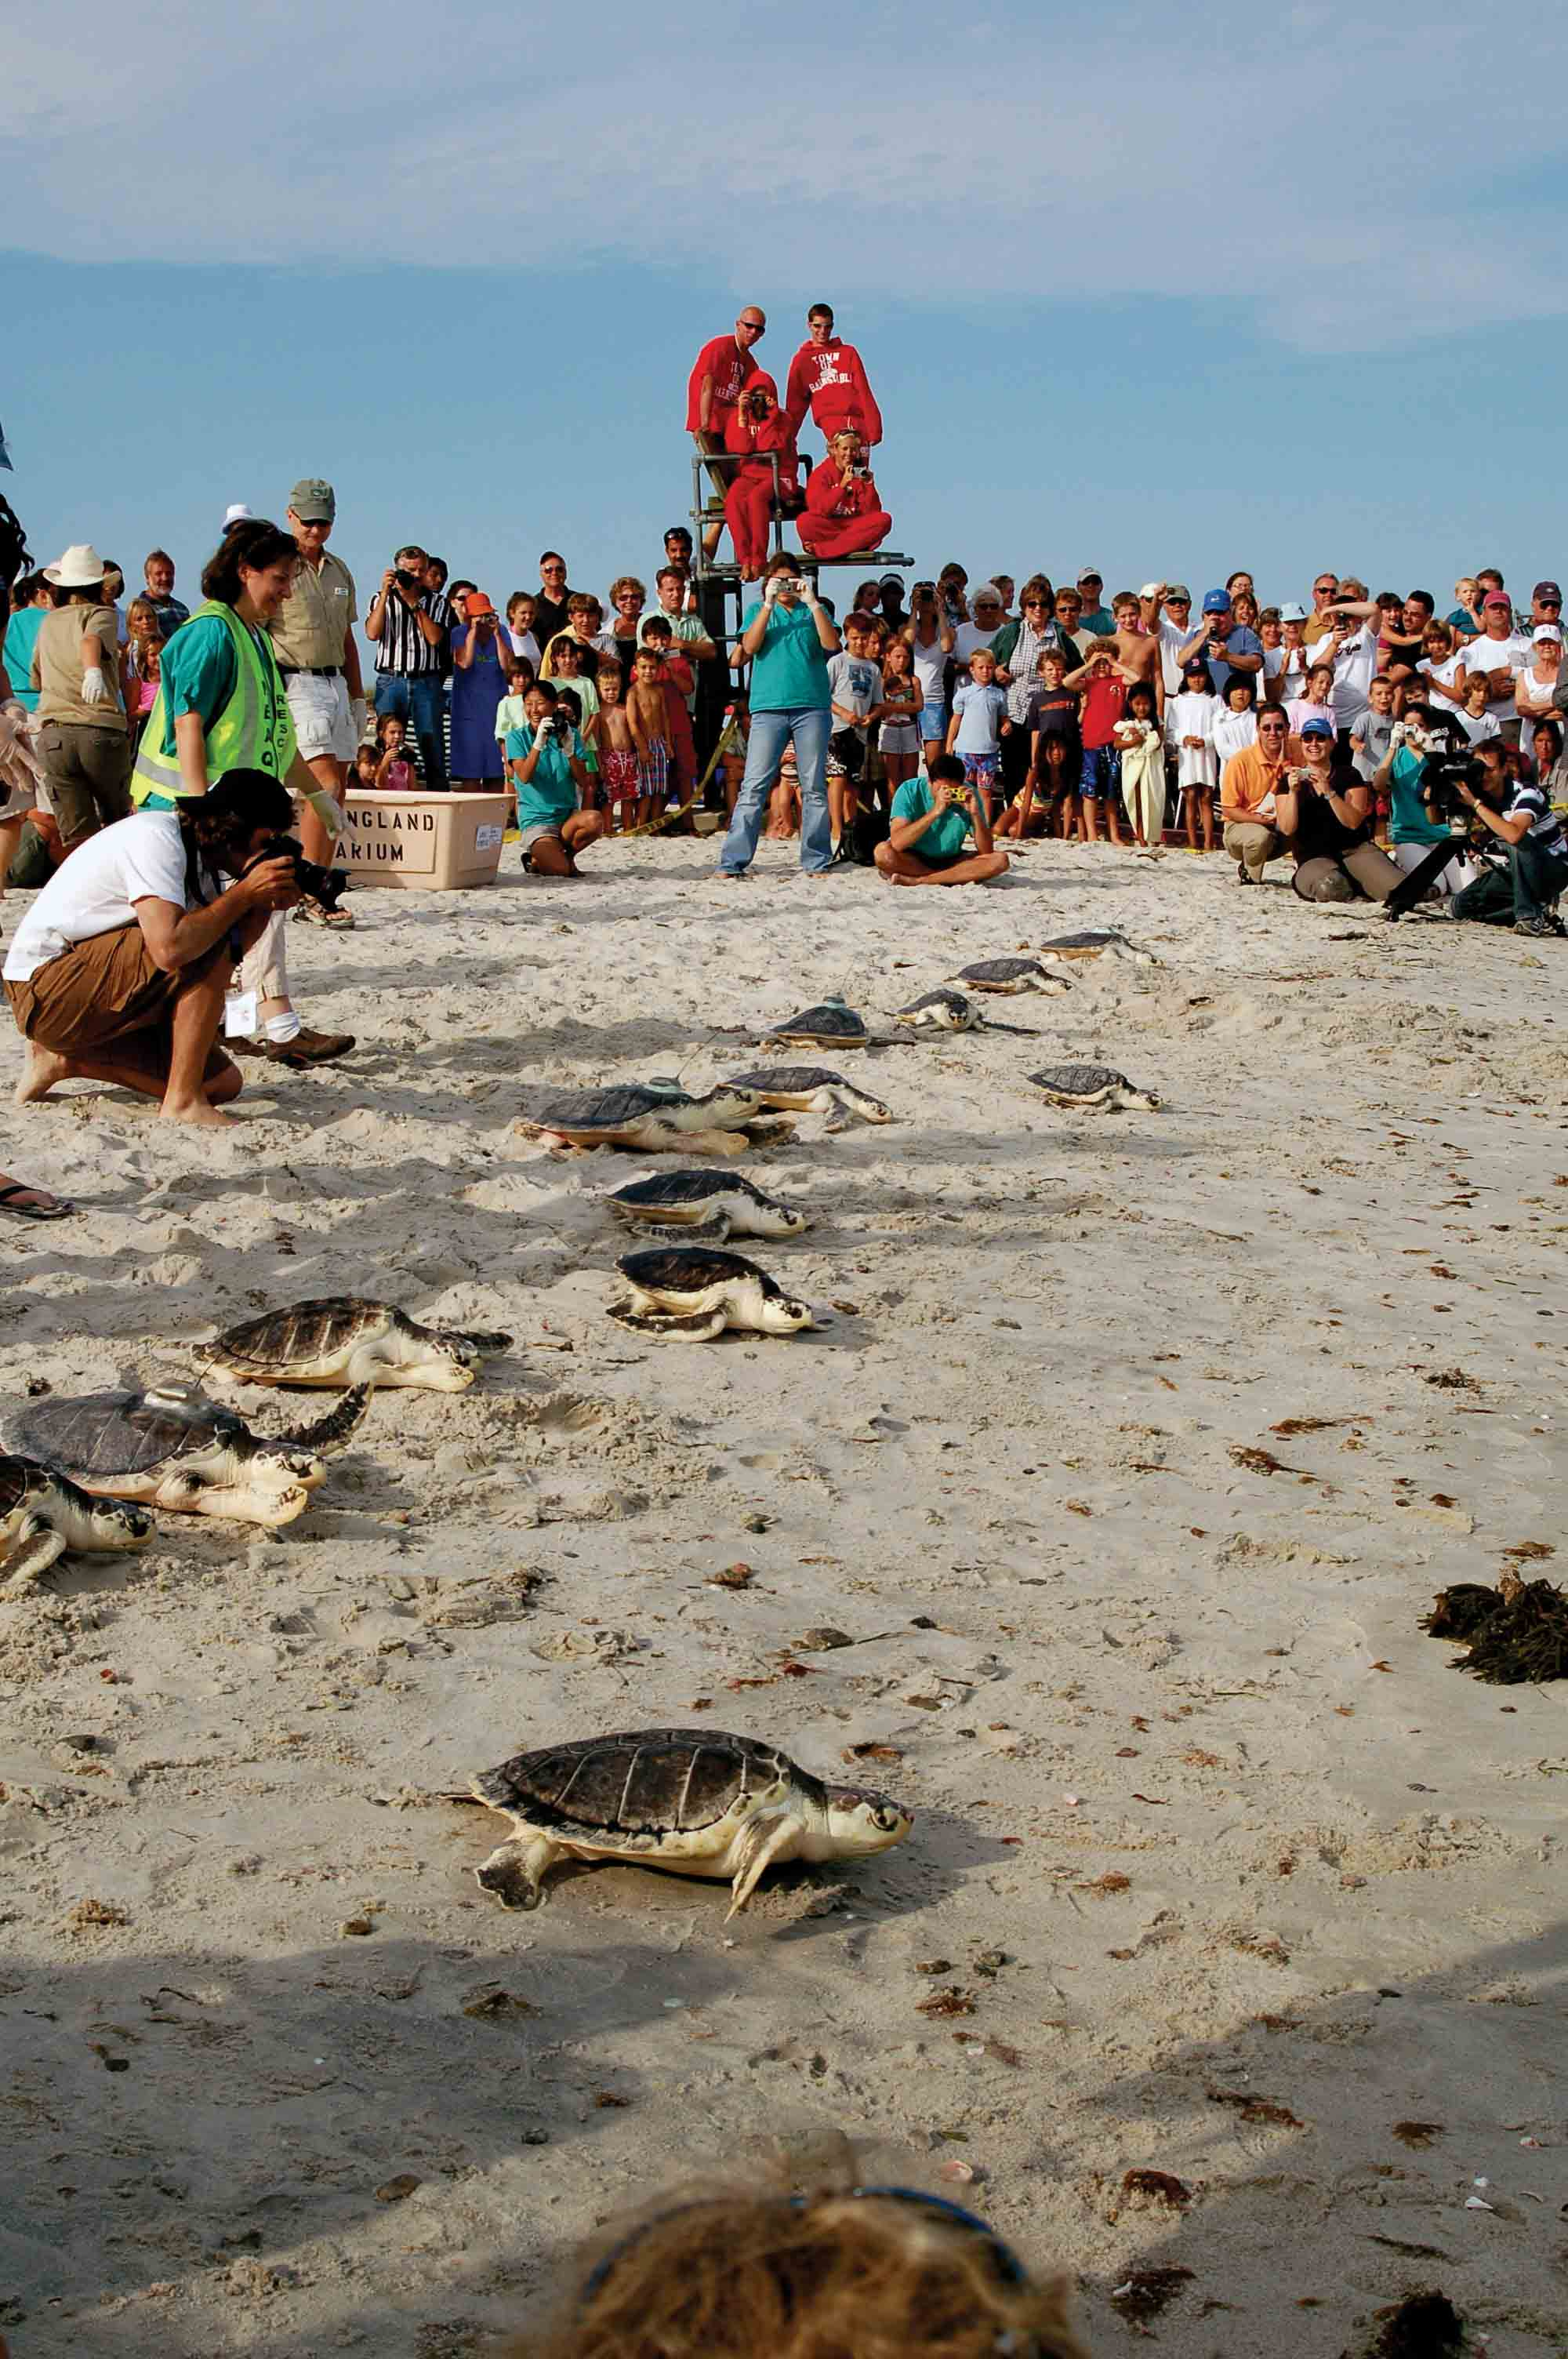 Local residents help to release rehabilitated Kemp's Ridley sea turtles into Nantucket Sound off Cape Cod, U.S.A. PHOTO COURTESY OF NOAA.